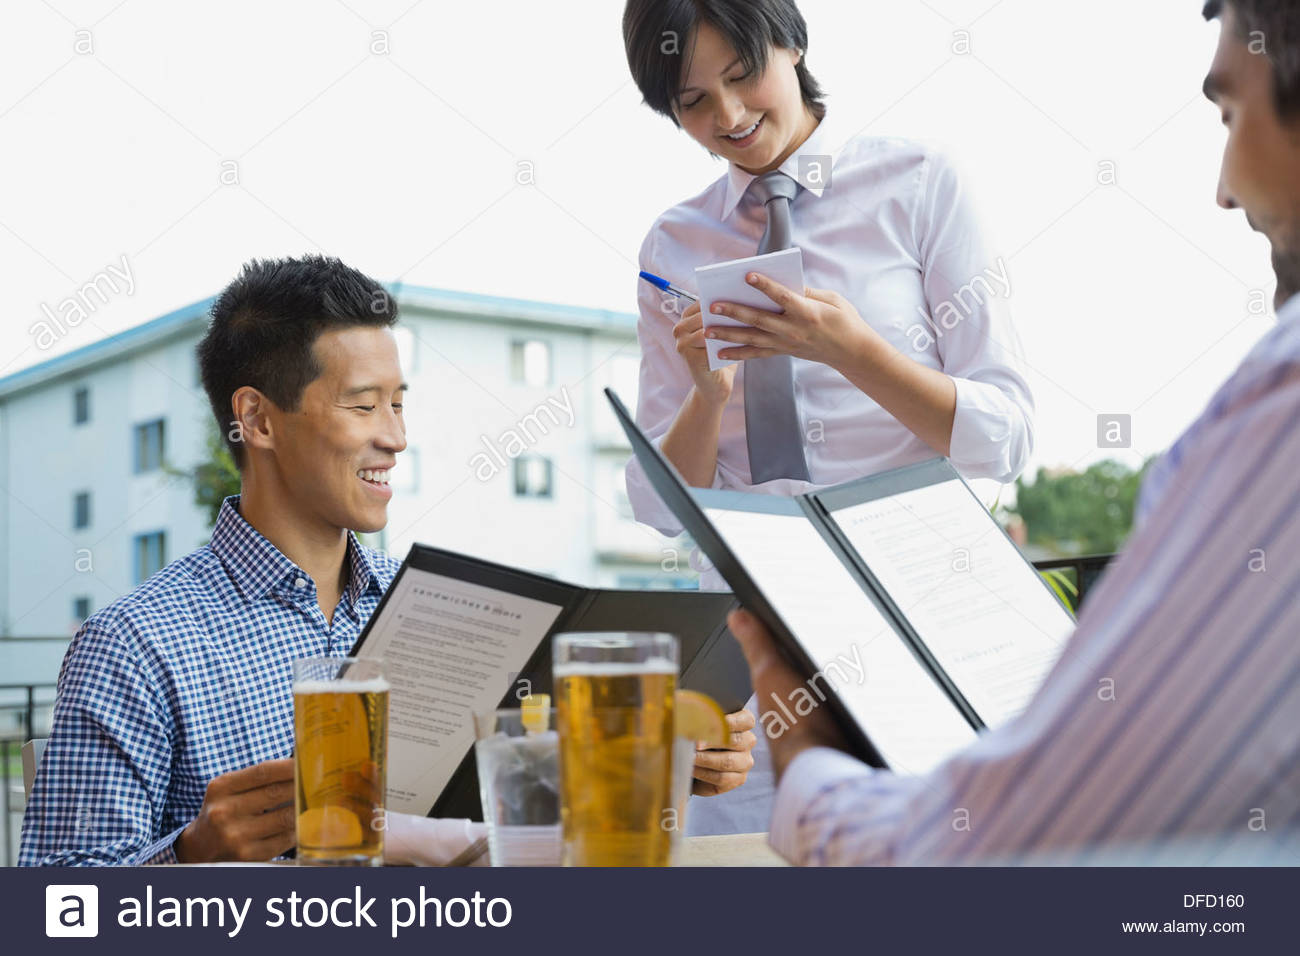 Waitress taking order from businessmen at outdoor cafe - Stock Image